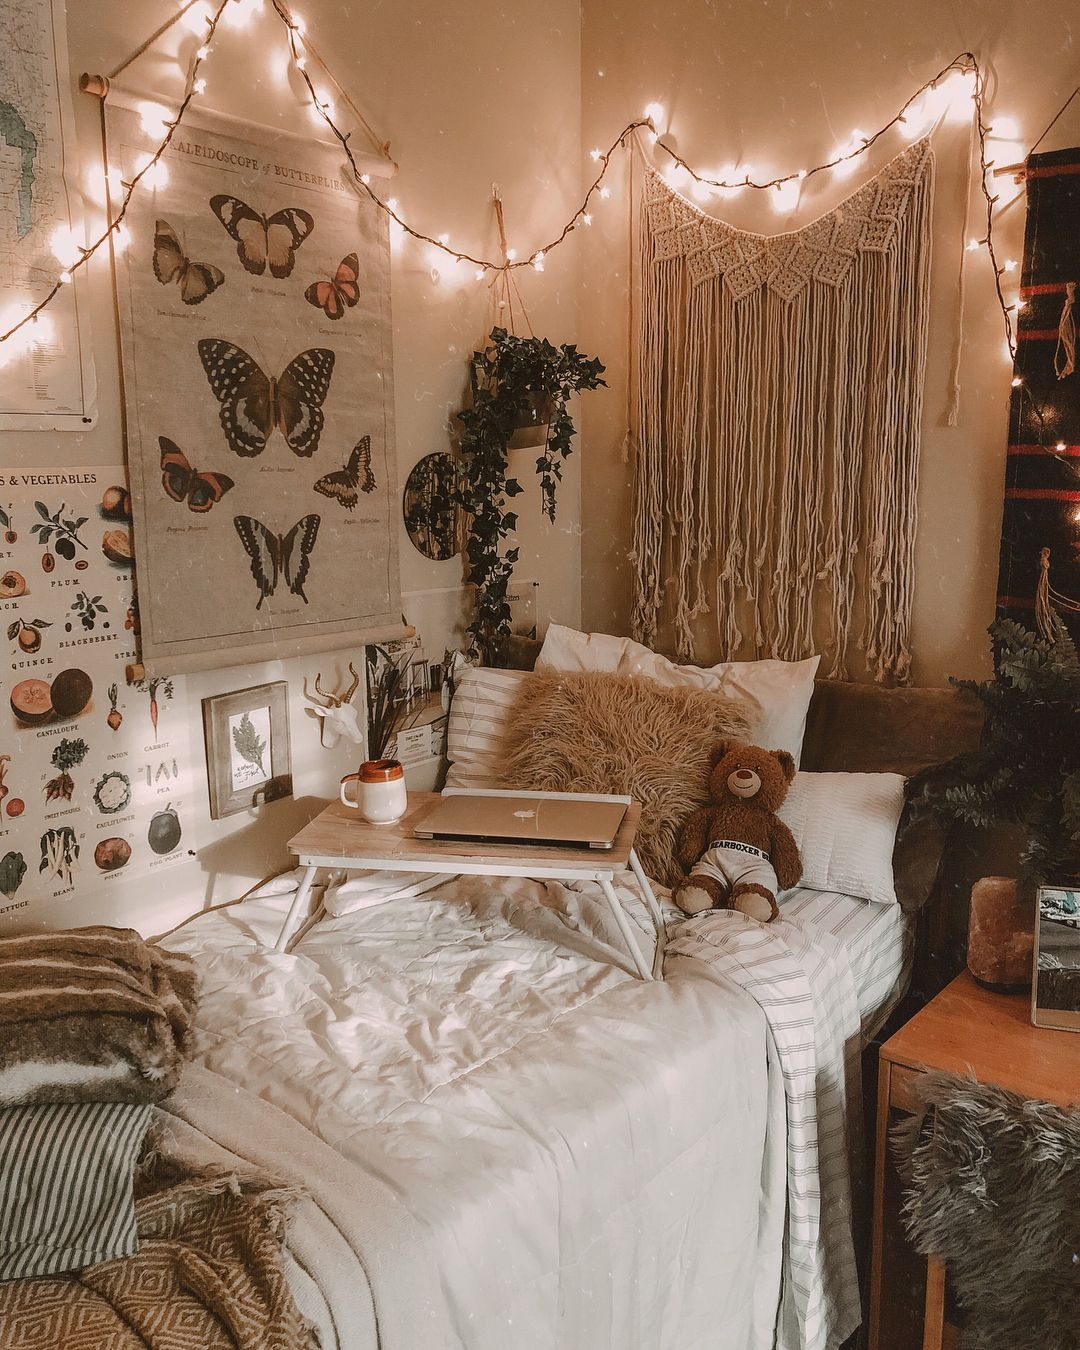 nice dorm rooms on 14 dorm room ideas for girls that are melting our minds room inspiration bedroom dorm room inspiration college dorm room decor college dorm room decor